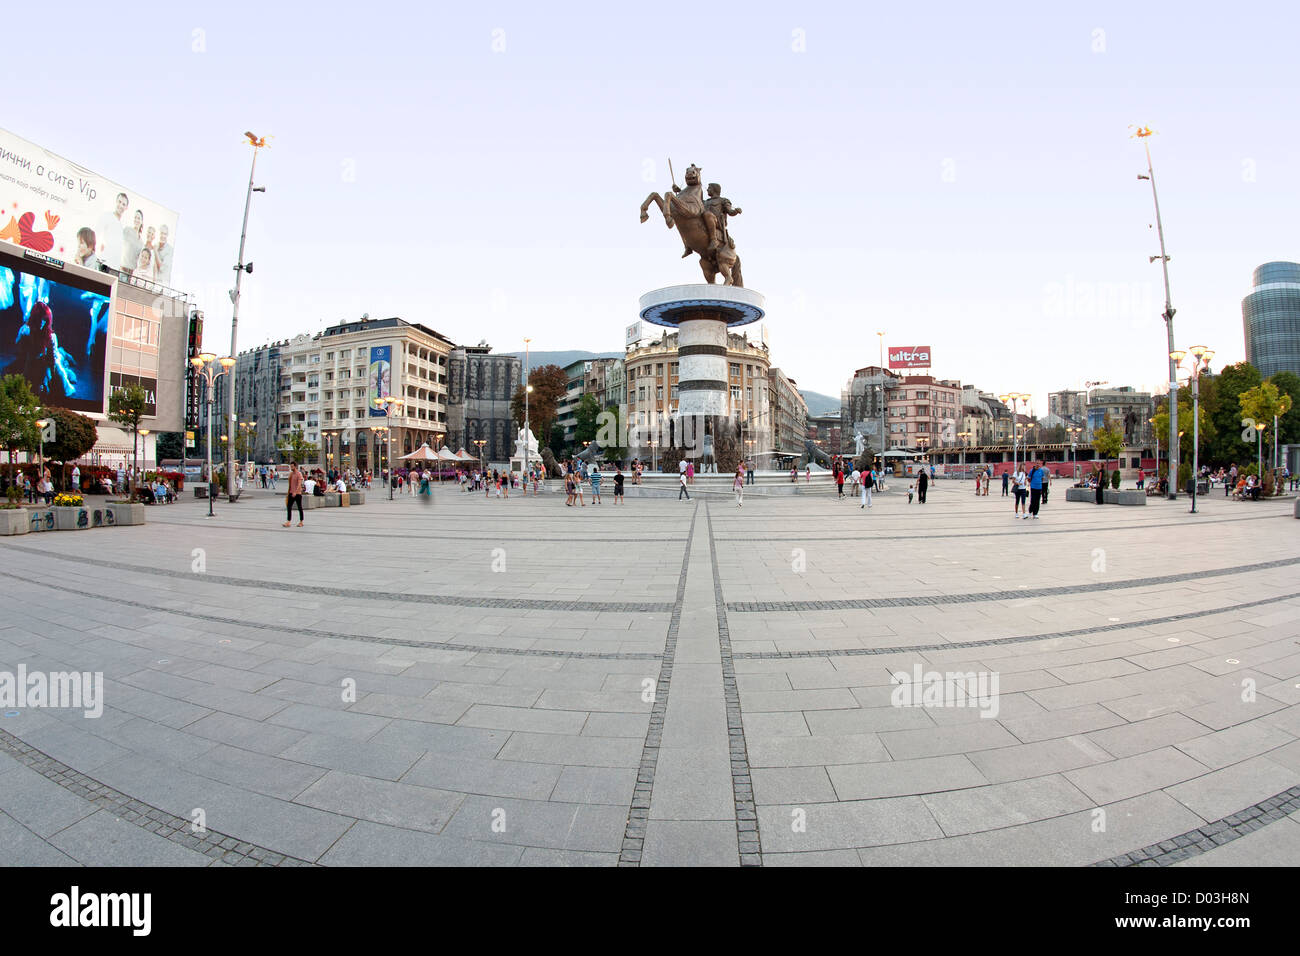 'Warrior on a Horse', a 28-metre high fountain in the centre of Skopje, the capital of Macedonia. - Stock Image